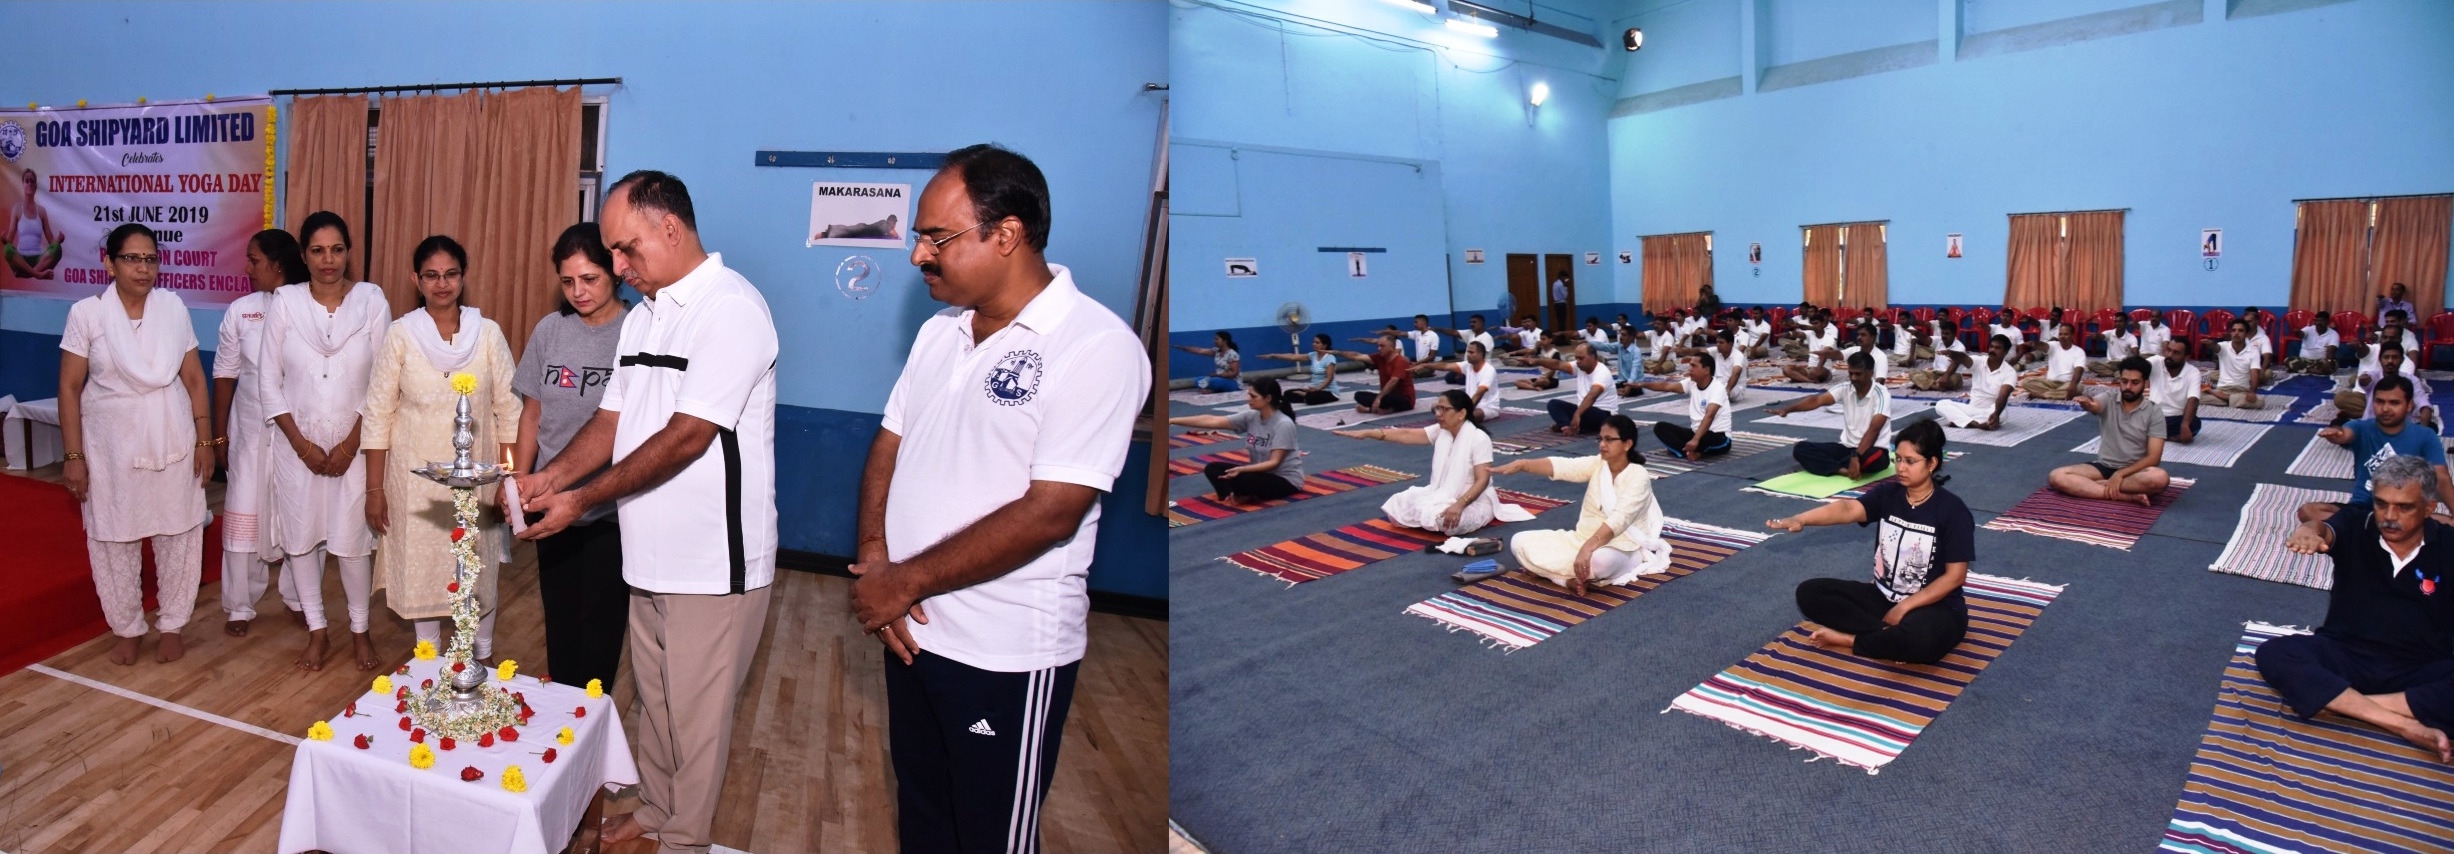 GOA SHIPYARD LIMITED CELEBRATED INTERNATIONAL YOGA DAY